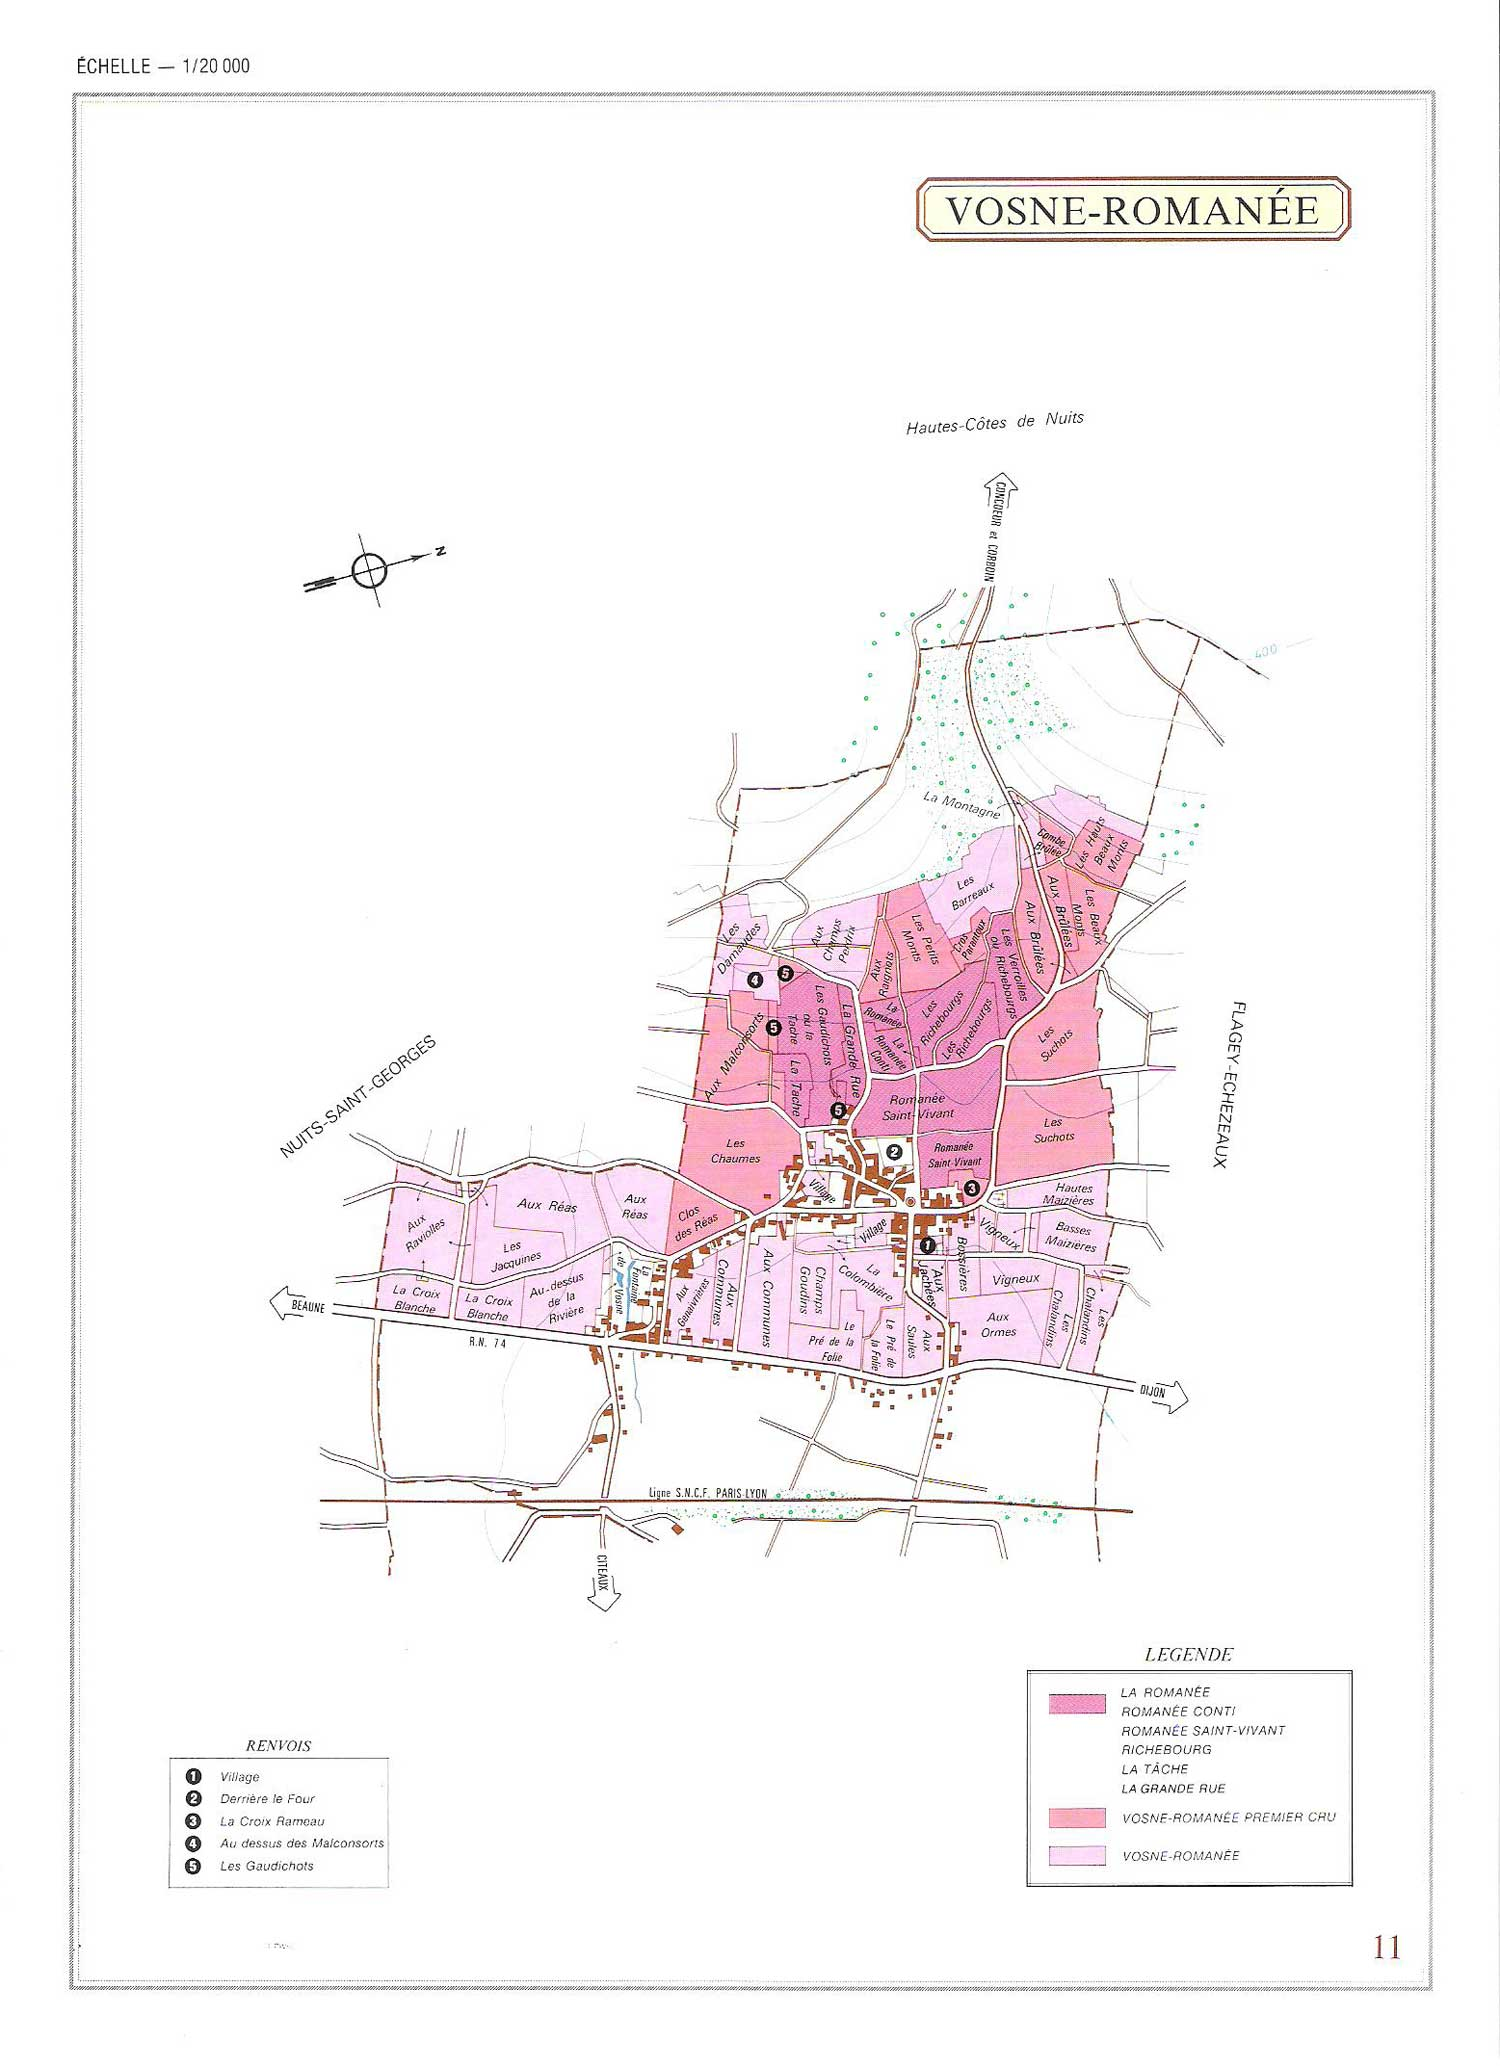 Picture of Vosne-Romanee Vineyard Map